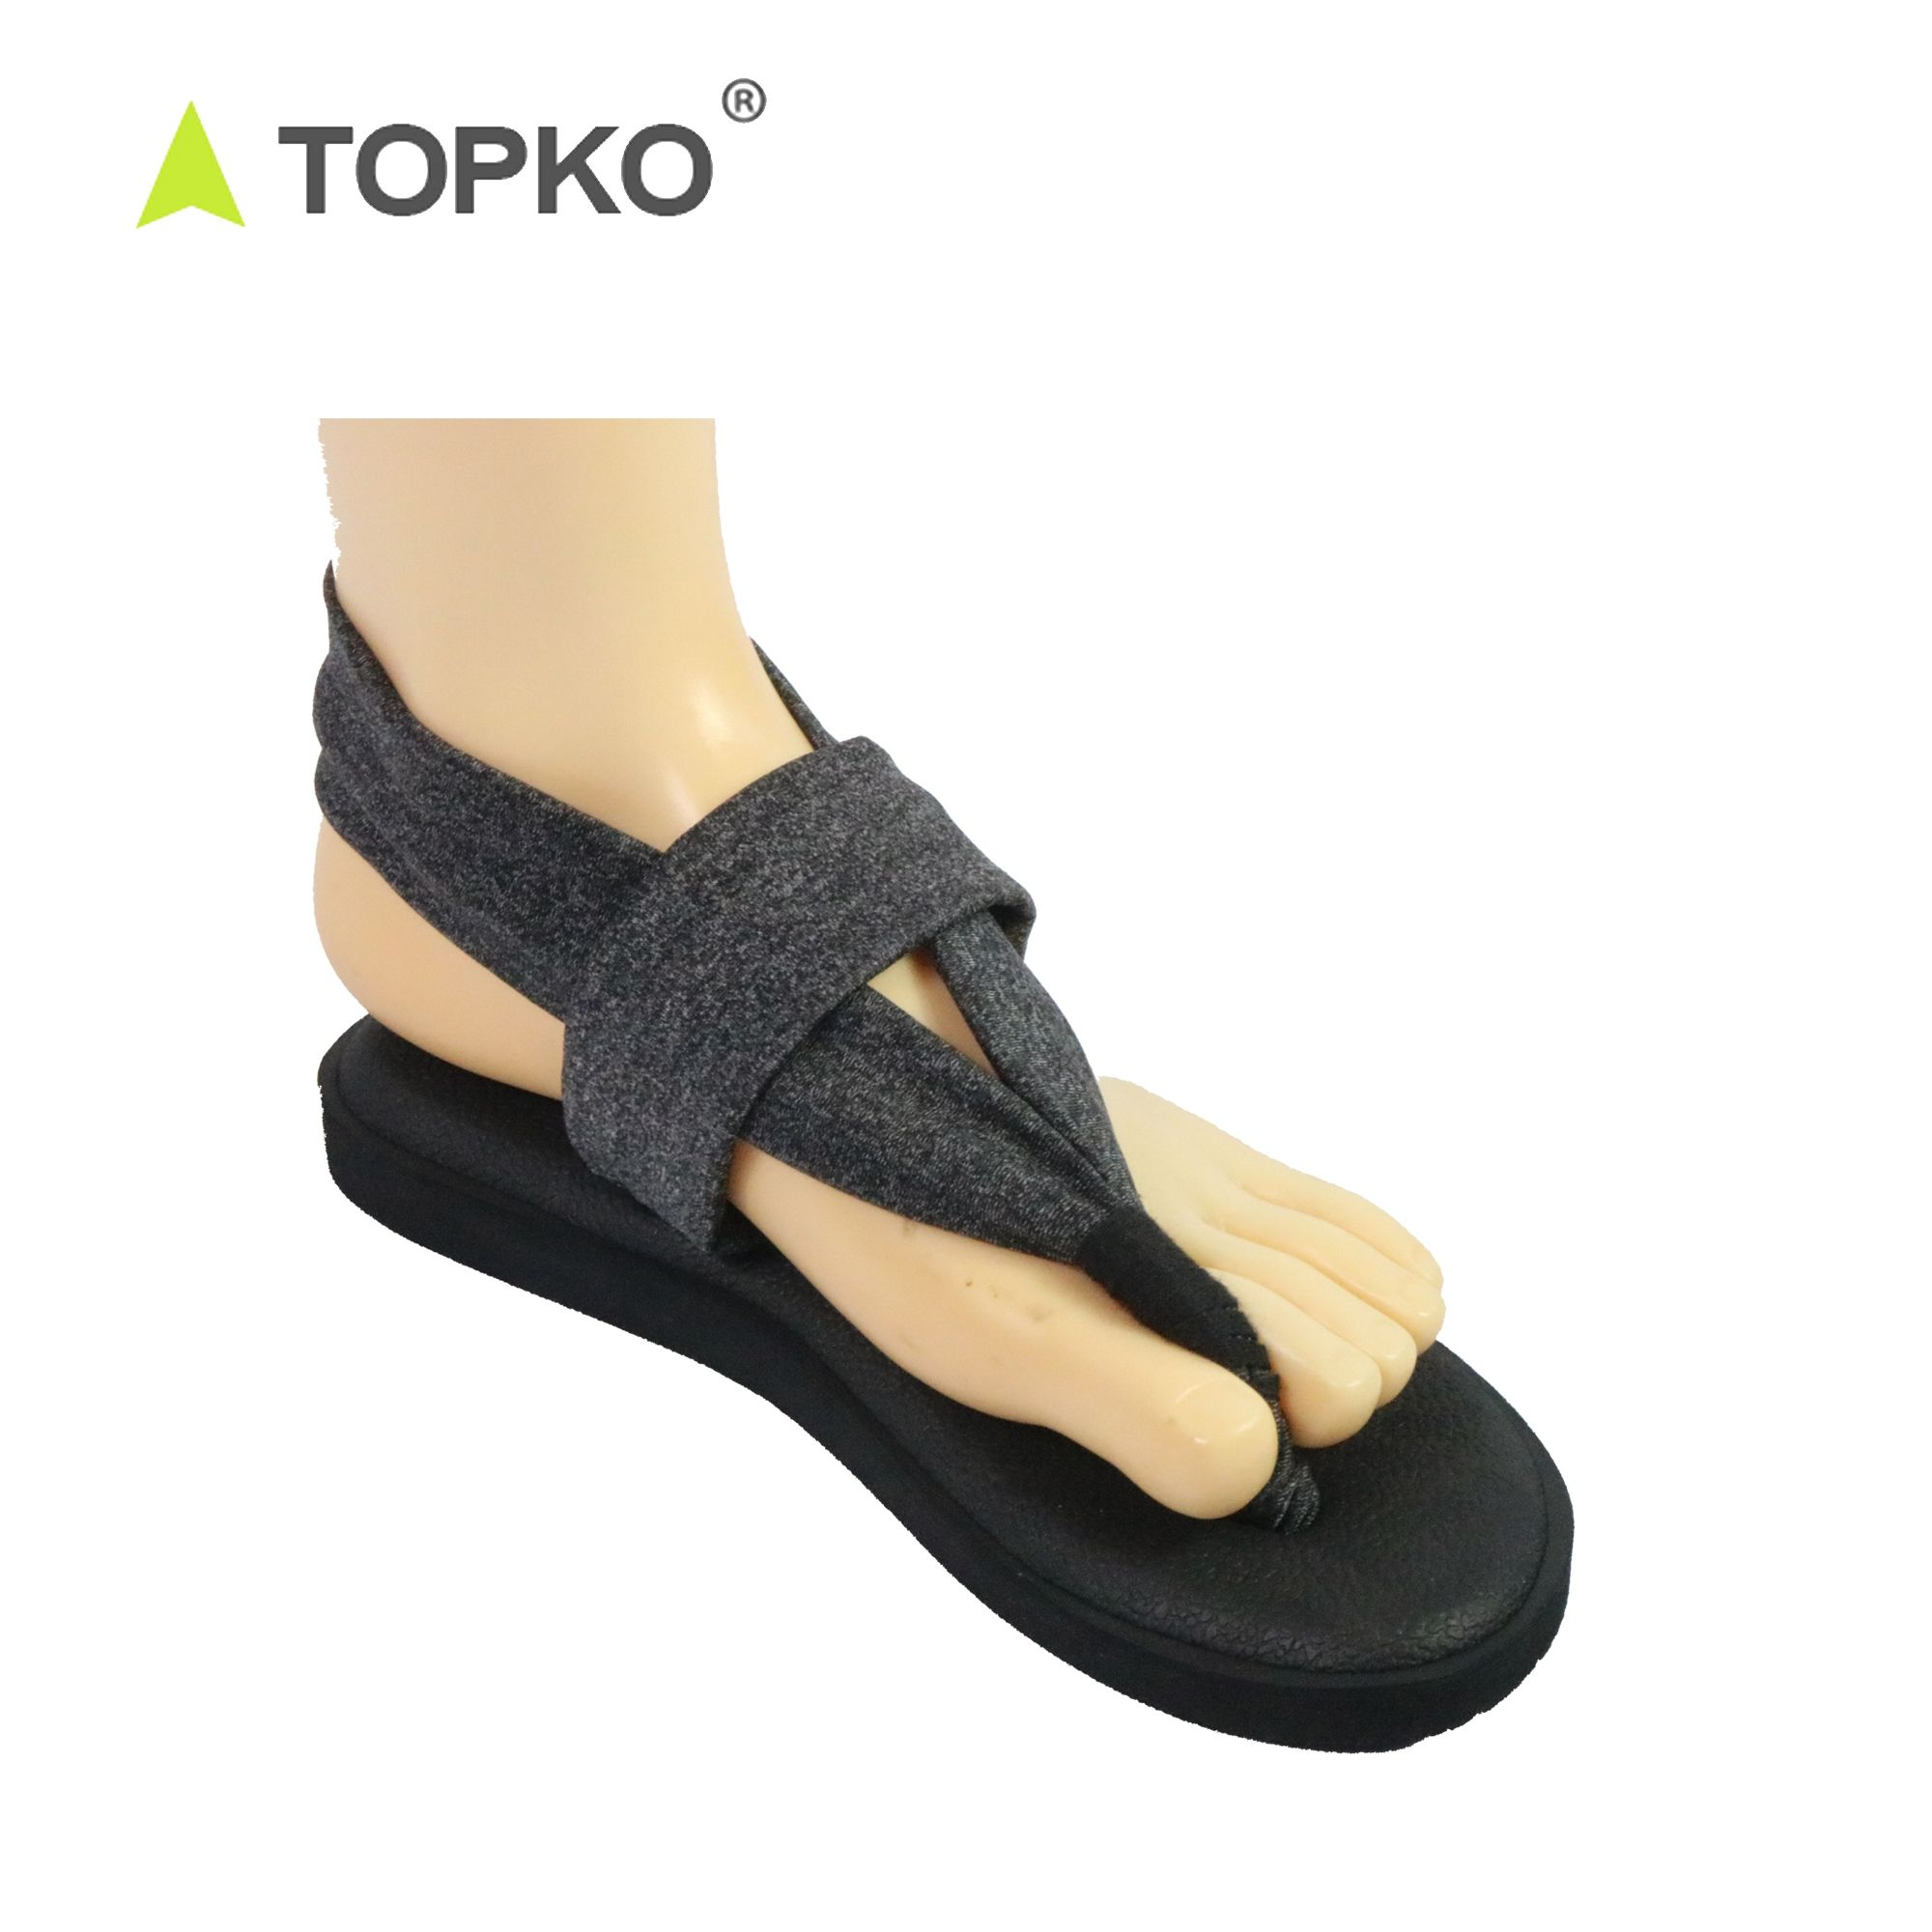 Topko Hot Yoga, Pilates or at Home for Added Balance and Stability Pilates Yoga Shoes for women